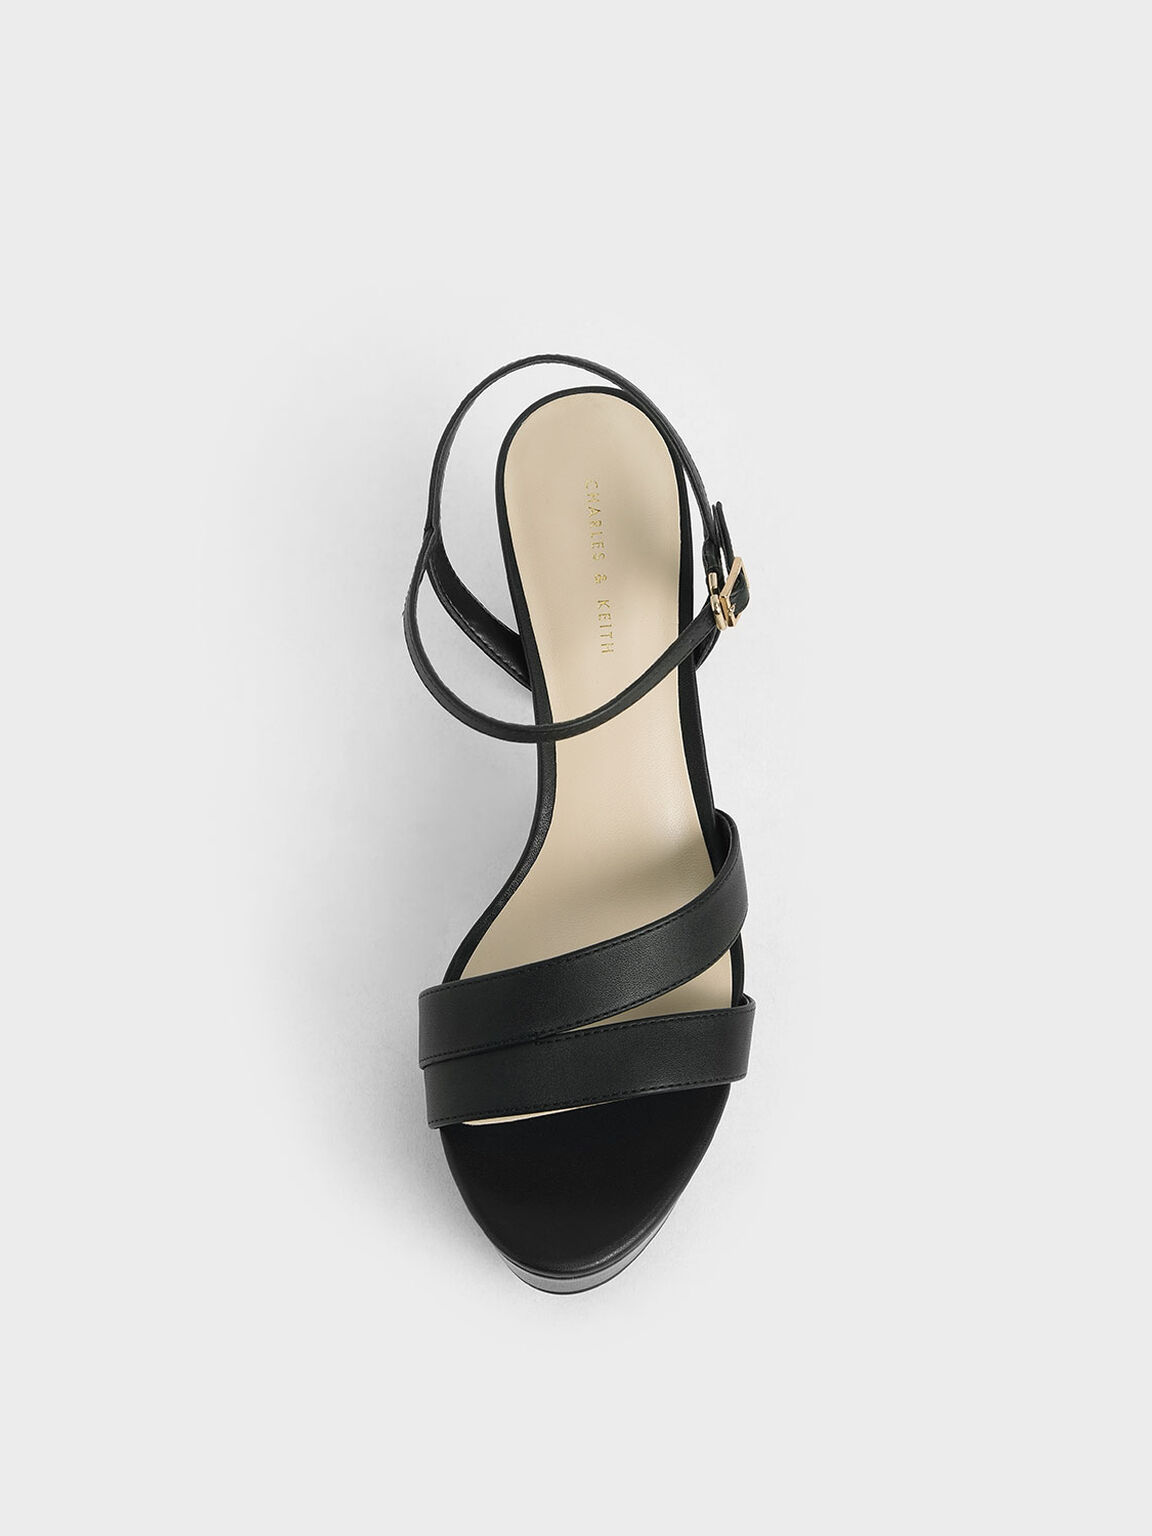 Strappy Platform Sandals, Black, hi-res